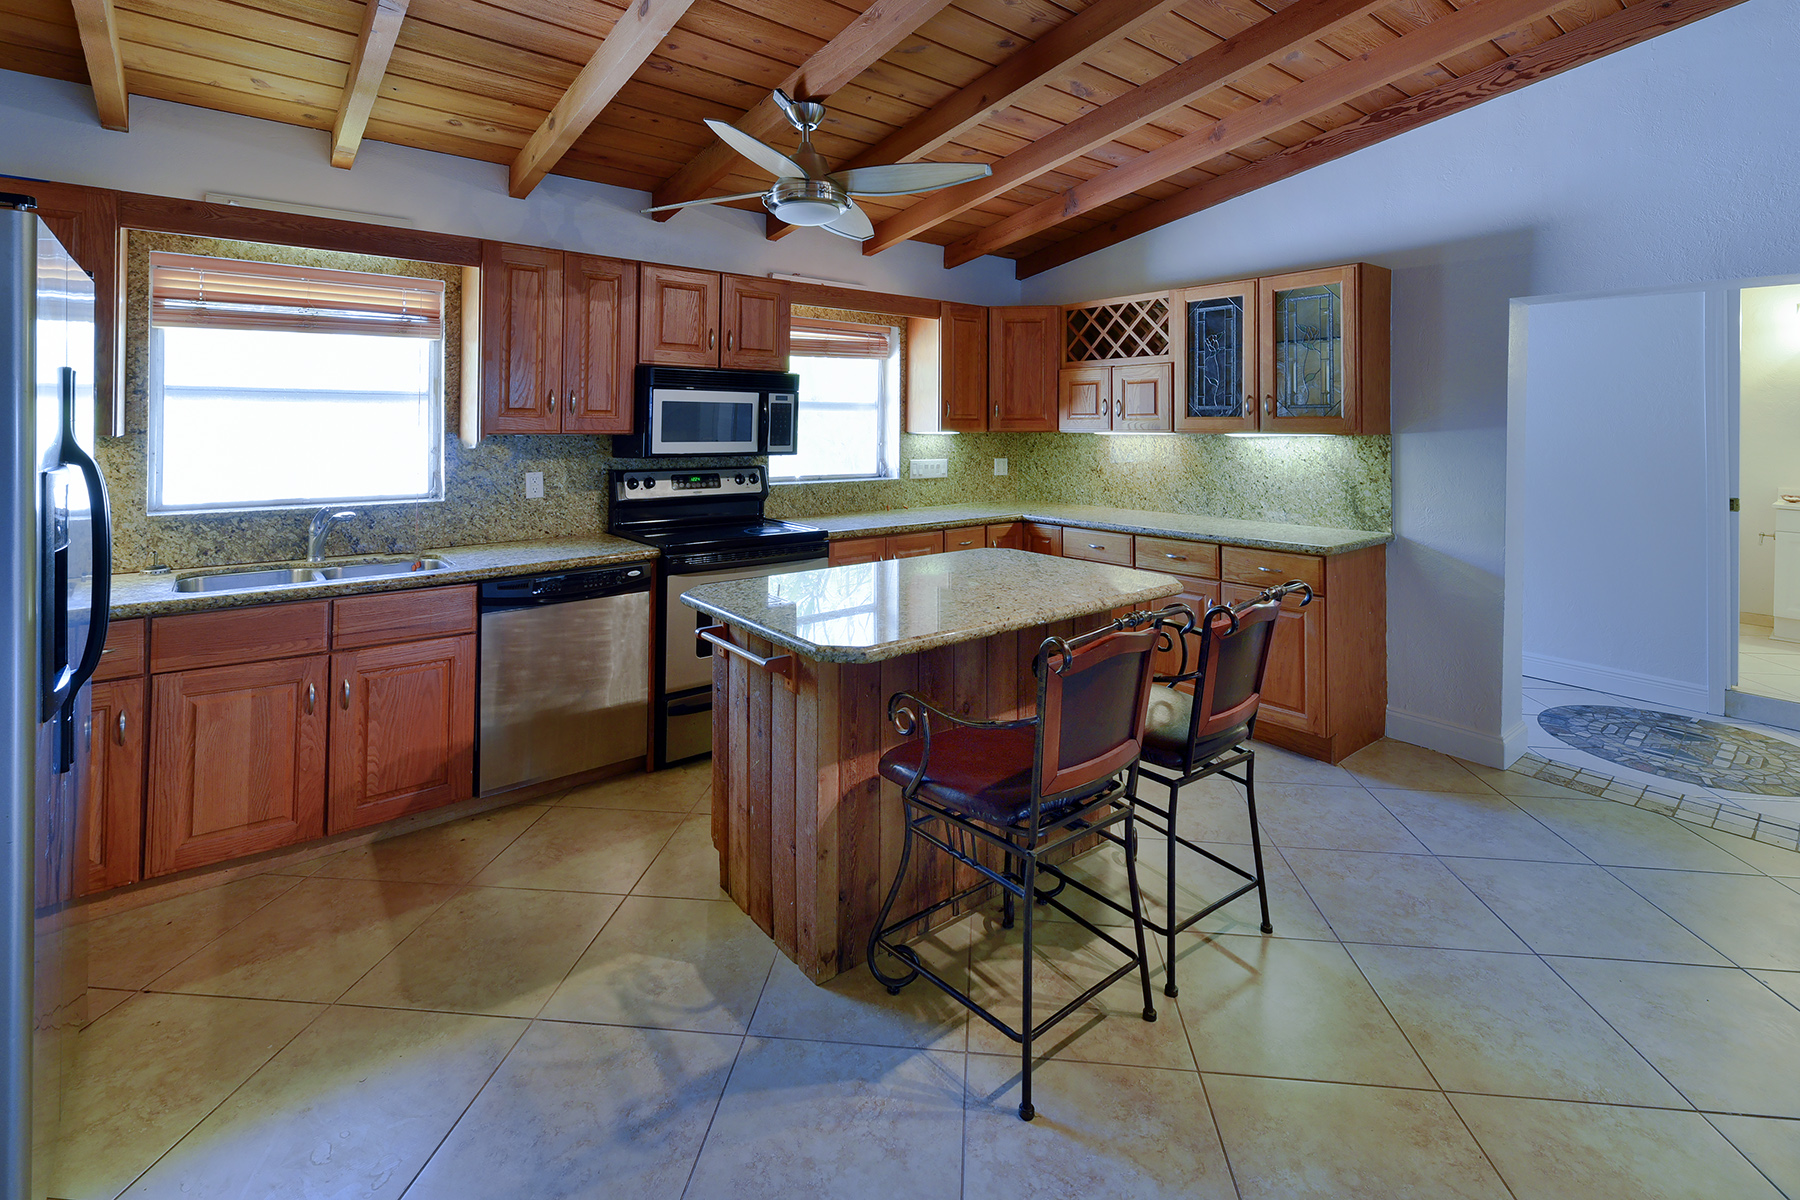 Single Family Home for Sale at Ground Level Canalfront Home 26 Jean La Fitte Drive Key Largo, Florida 33037 United States